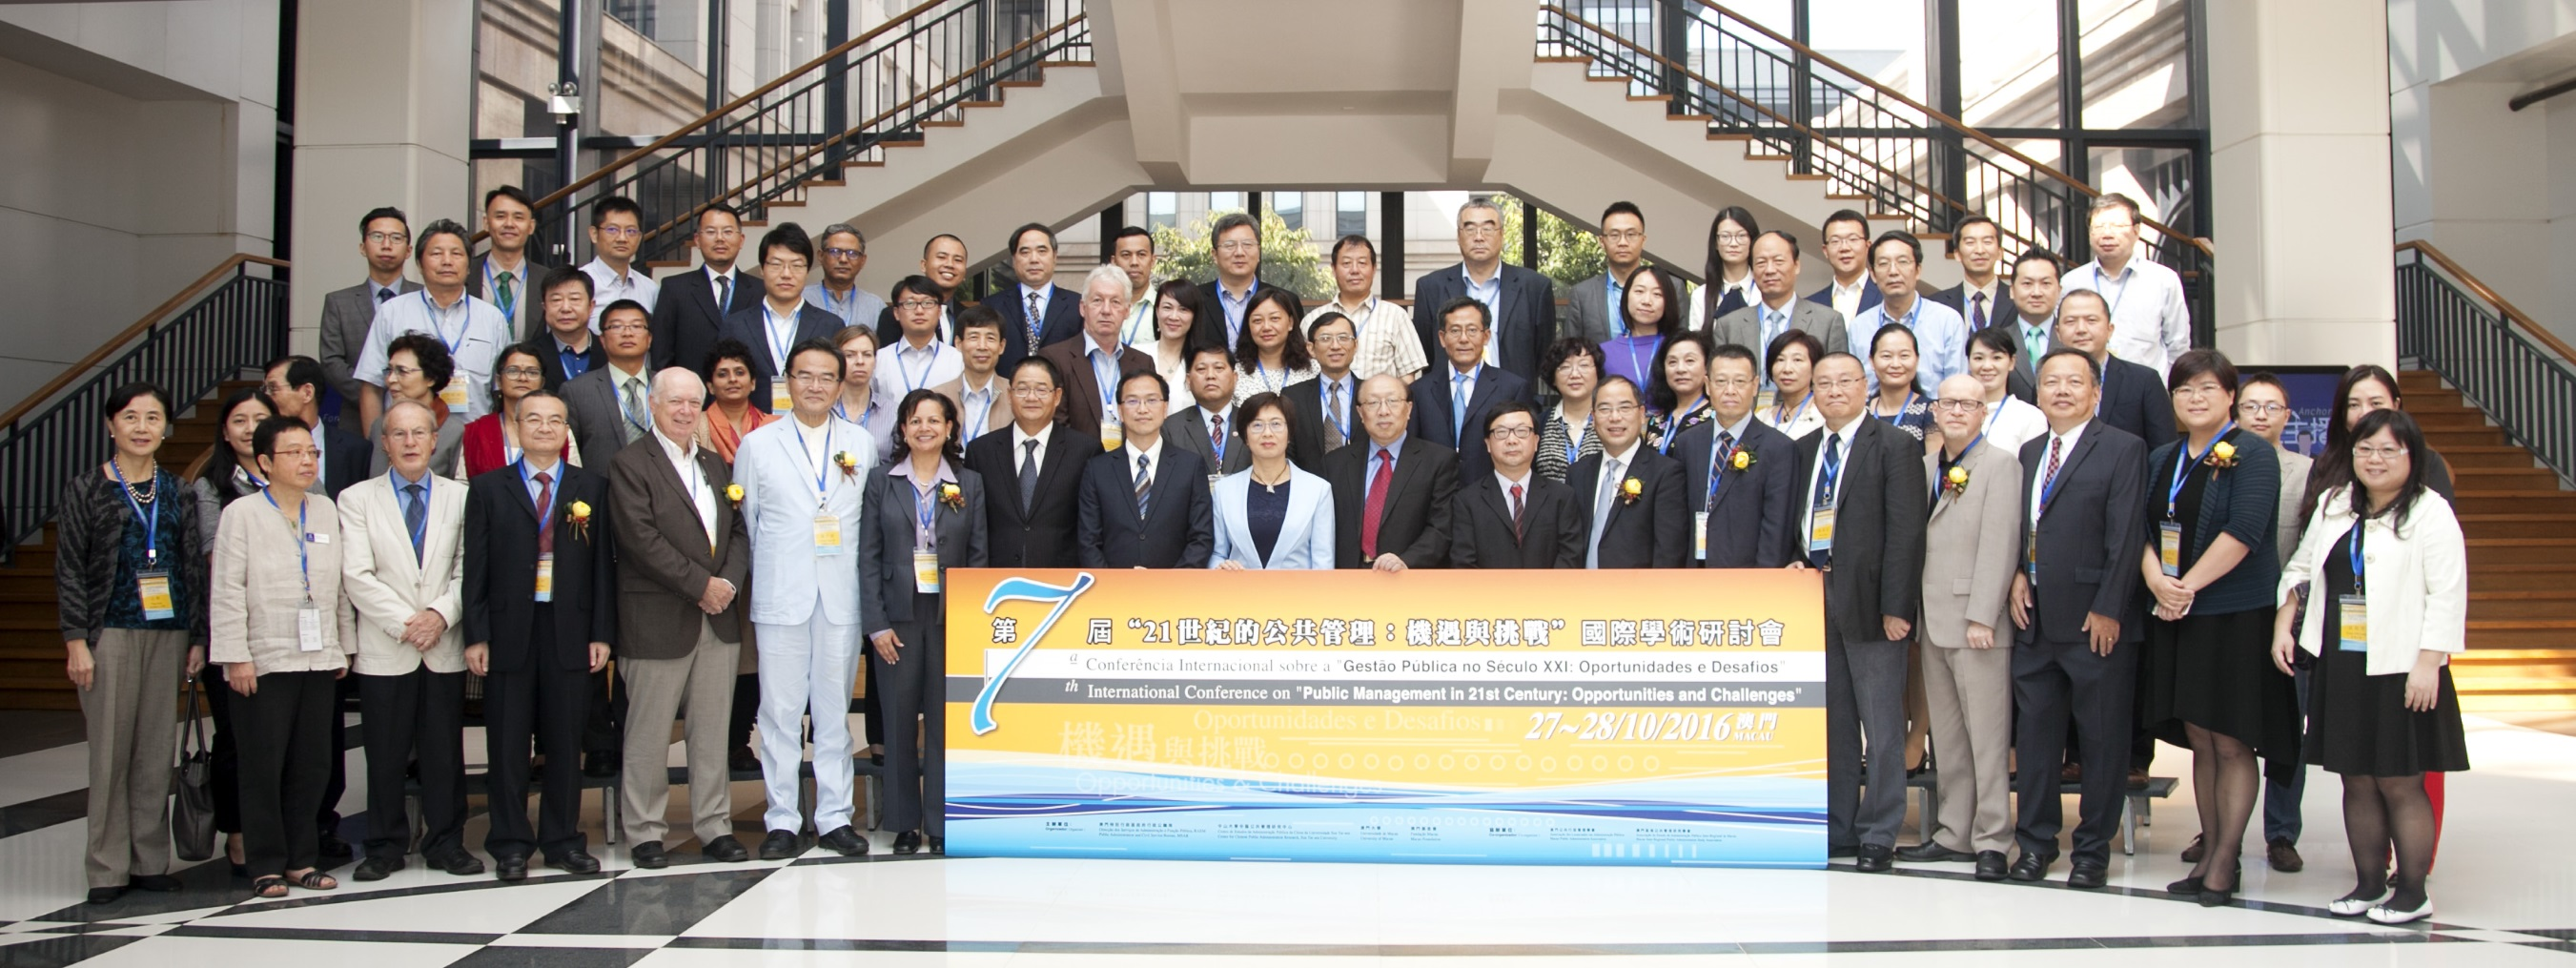 The 7th International Conference on 'Public Management in the 21st Century' opens at UM